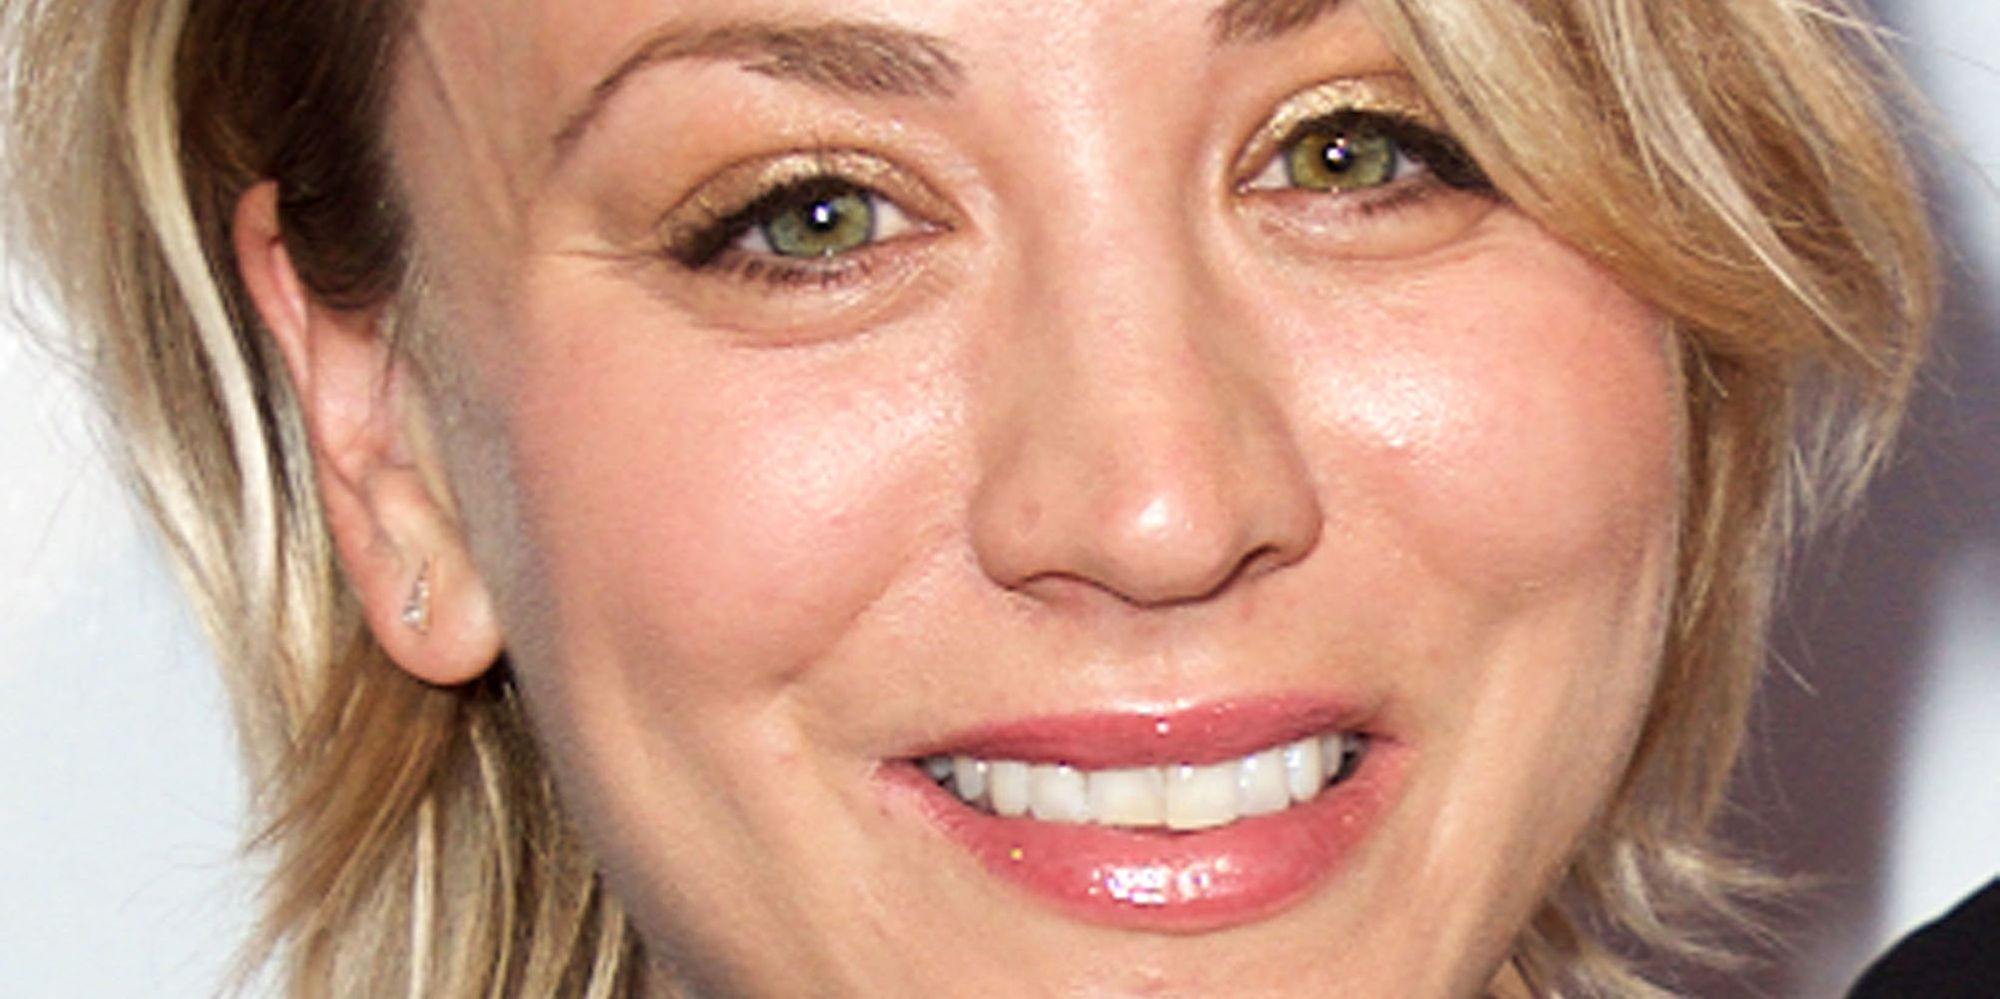 Flashback Friday To An Interview With Teen Kaley Cuoco ...